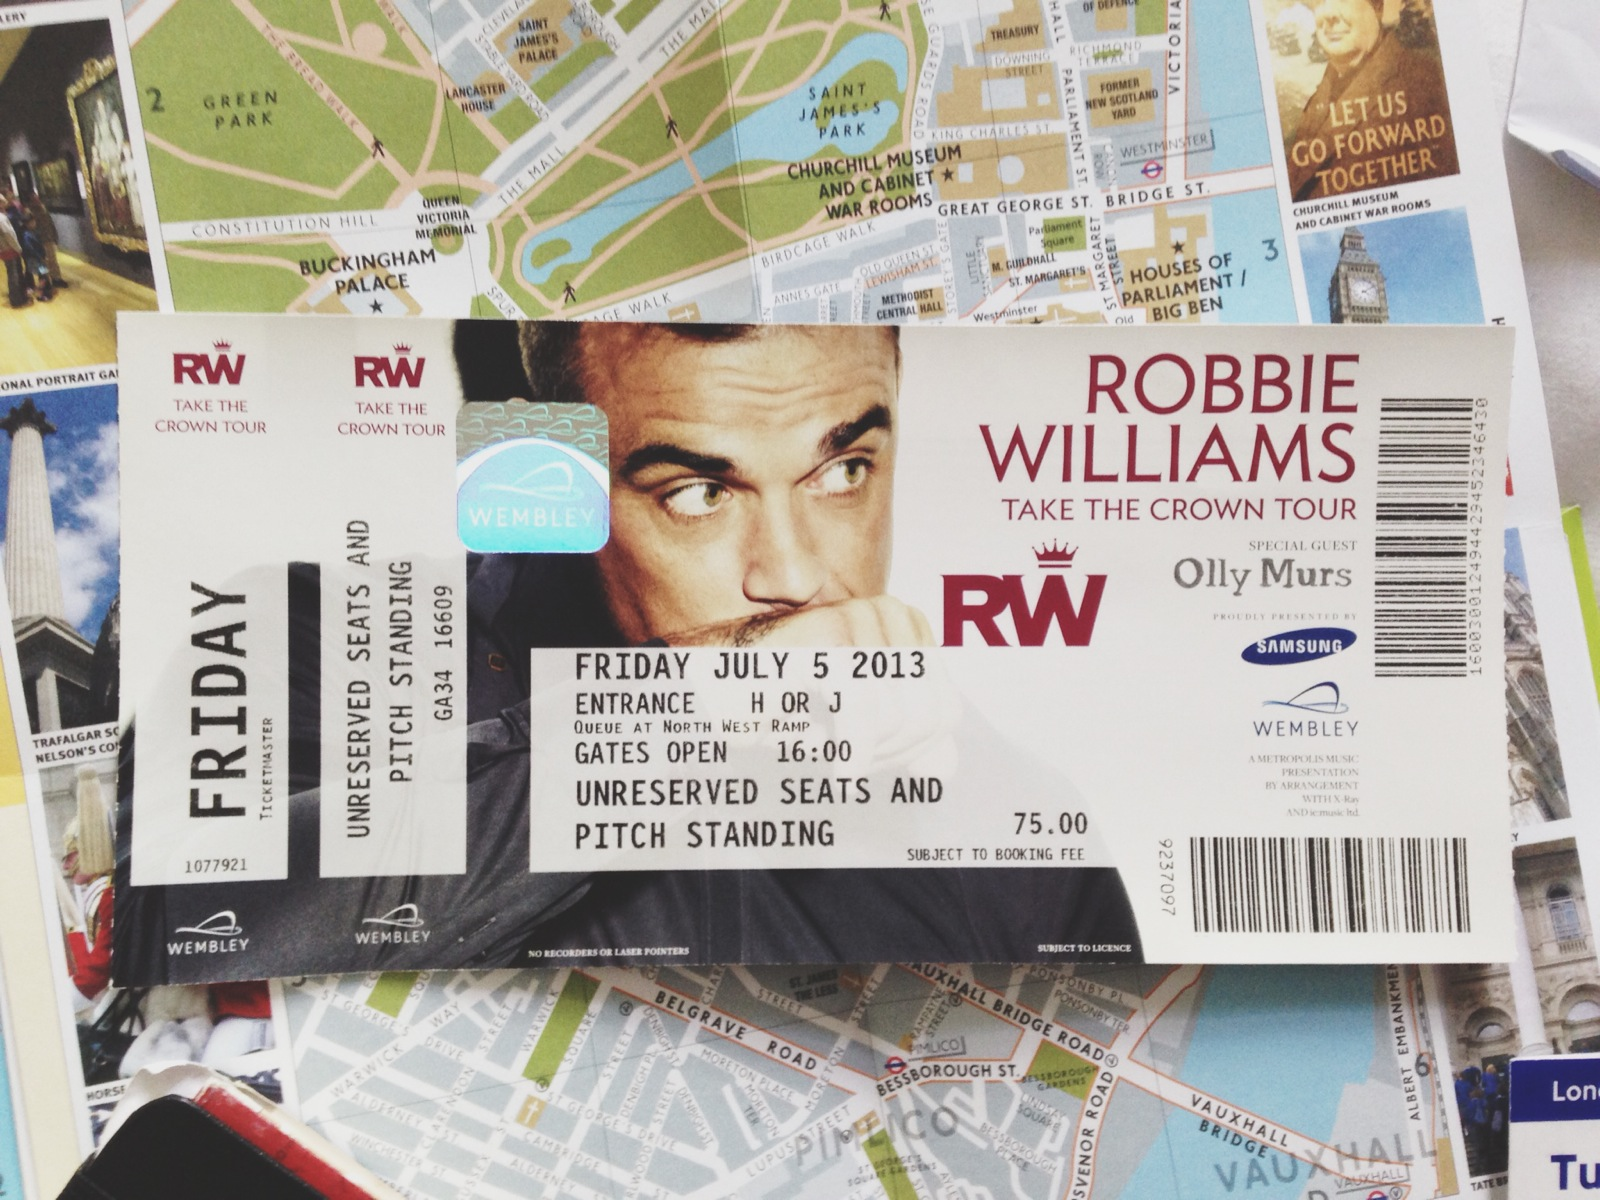 robbie-williams-londres-2013.JPG